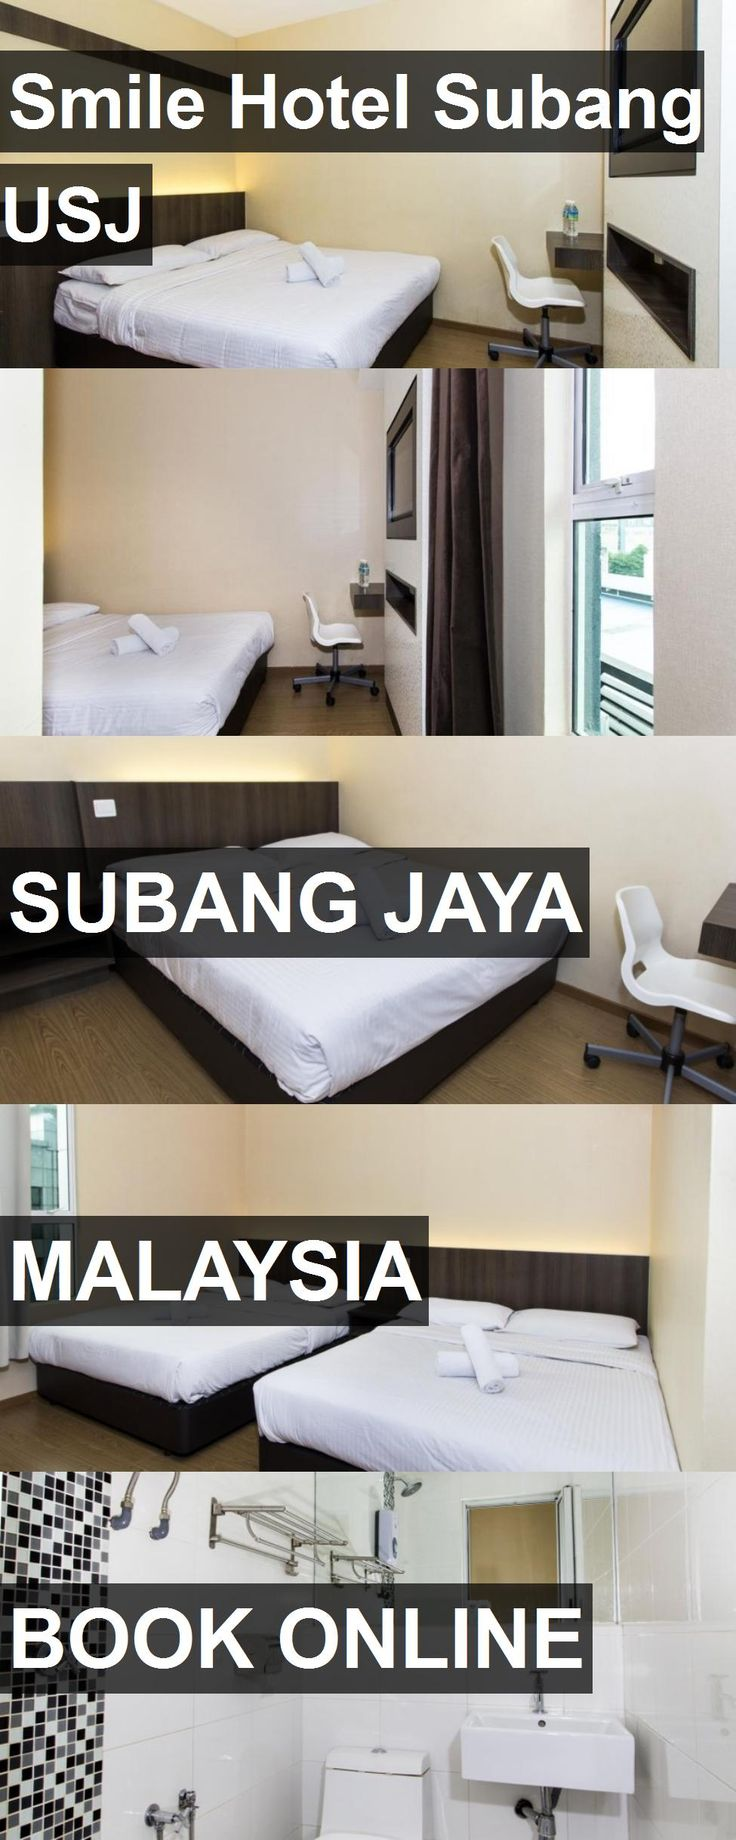 Hotel Smile Subang USJ In Jaya Malaysia For More Information Photos